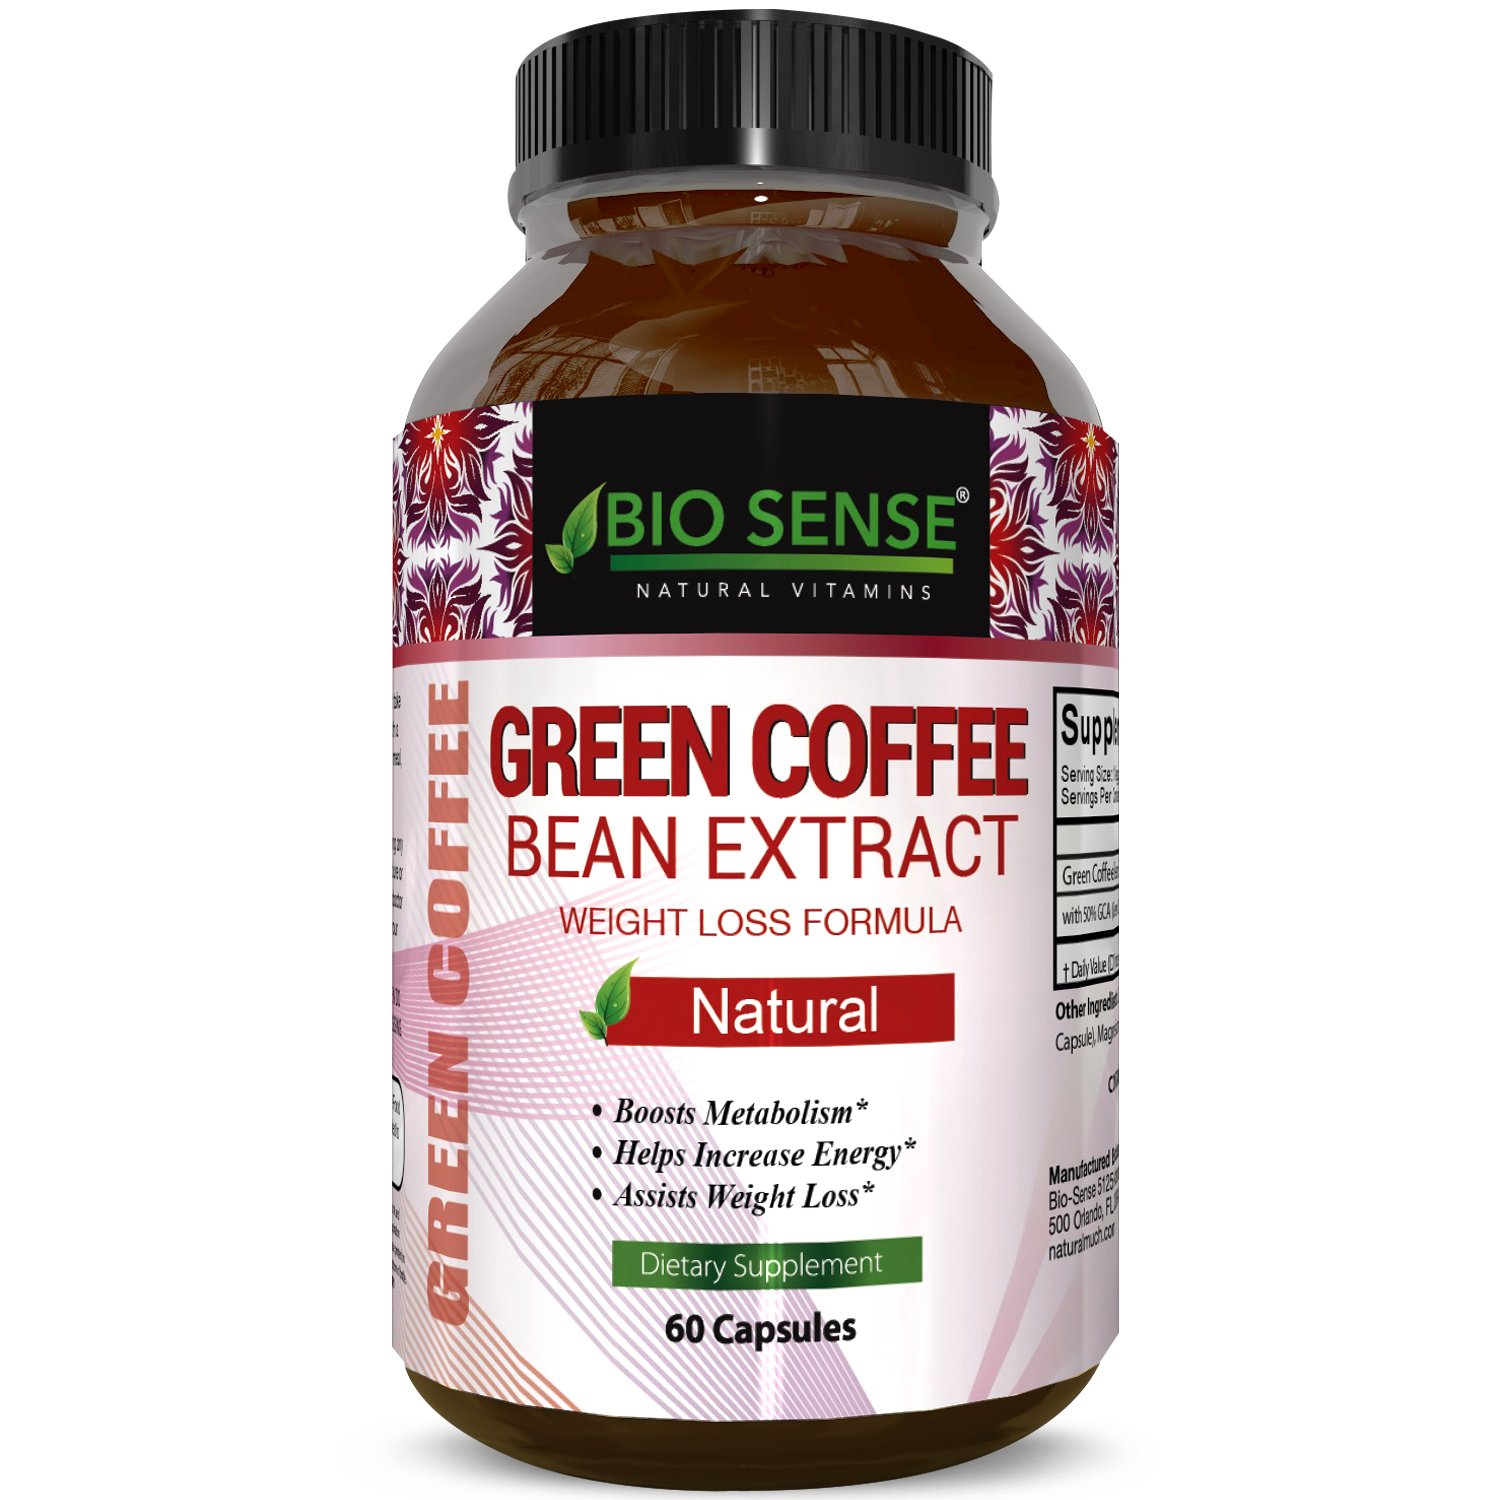 Pure Green Coffee Bean Extract for Weight Loss Pills - Dietary Supplement to Burn Fat Curb Appetite and Boost Metabolism for Men and Women - Contains Antioxidants to Detox and Cleanse - 800mg Capsules by Bio Sense (Image #1)